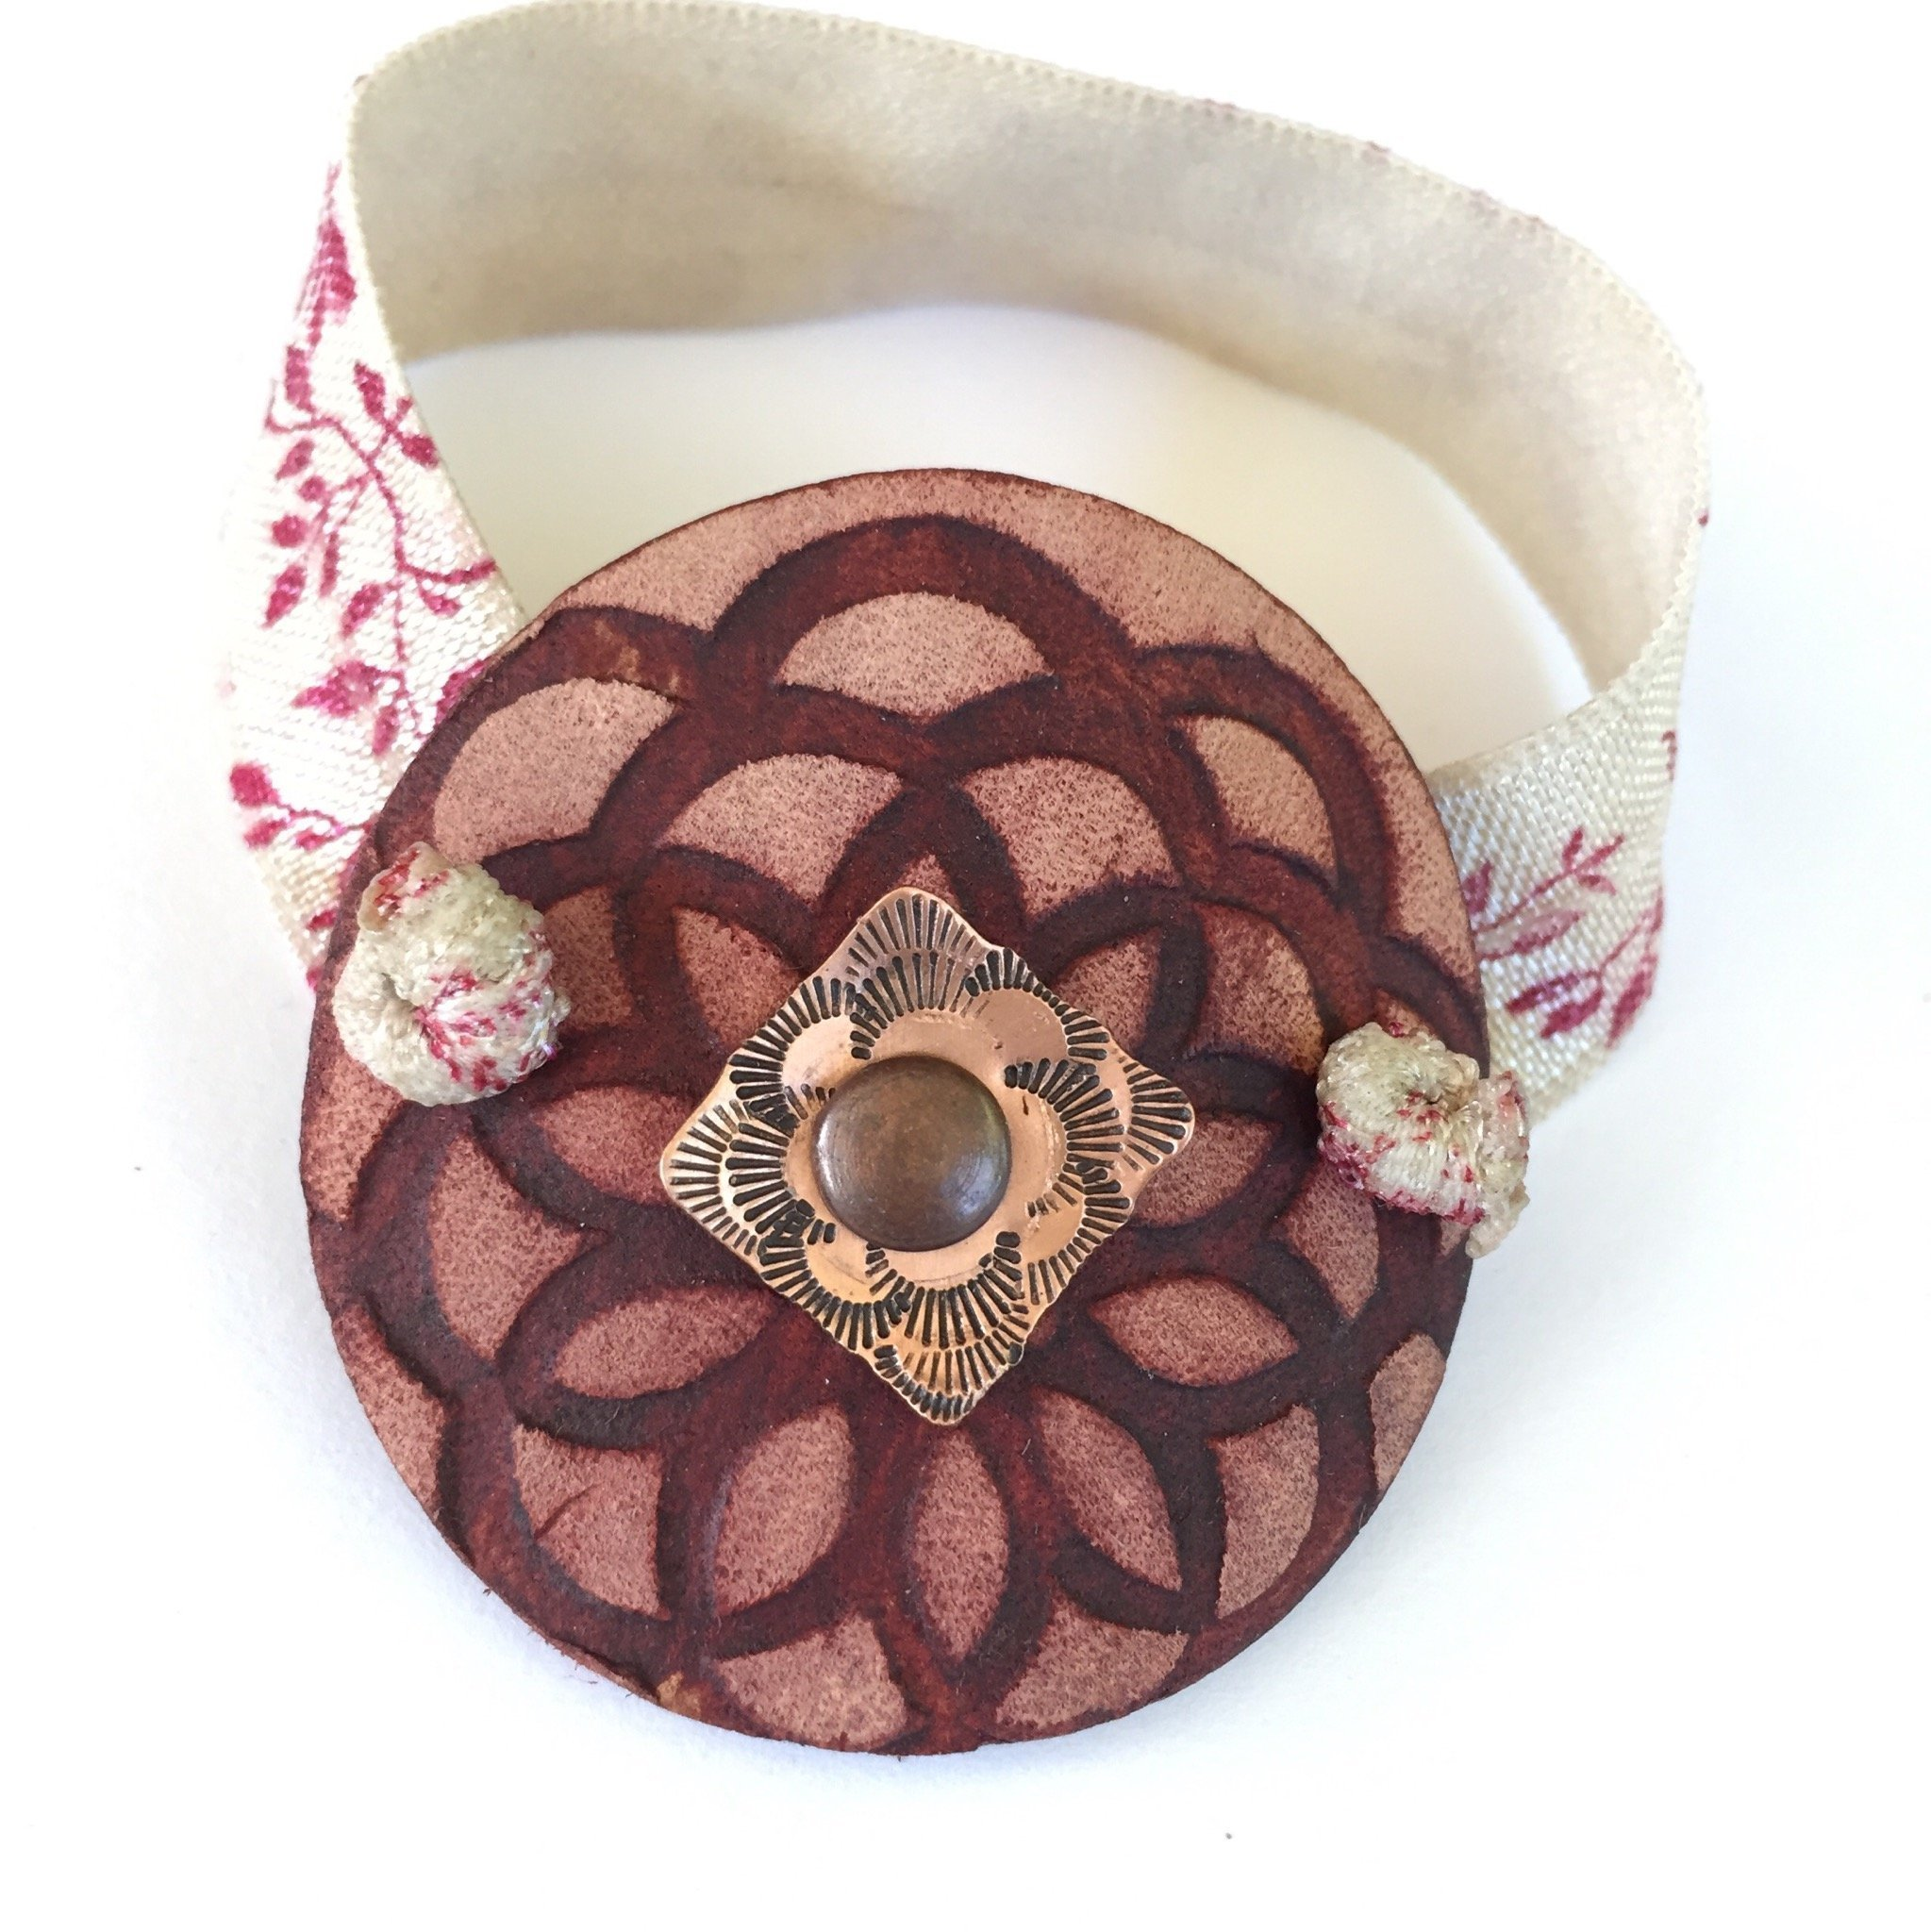 Boho Leather Ponytail Holder Round with Stamped Copper and Flat Elastic by BANDANA GIRL Ponytail Wrap Hair Accessory, Gift For Her, Hair Band, Gift Idea for Her for Women with Long Hair